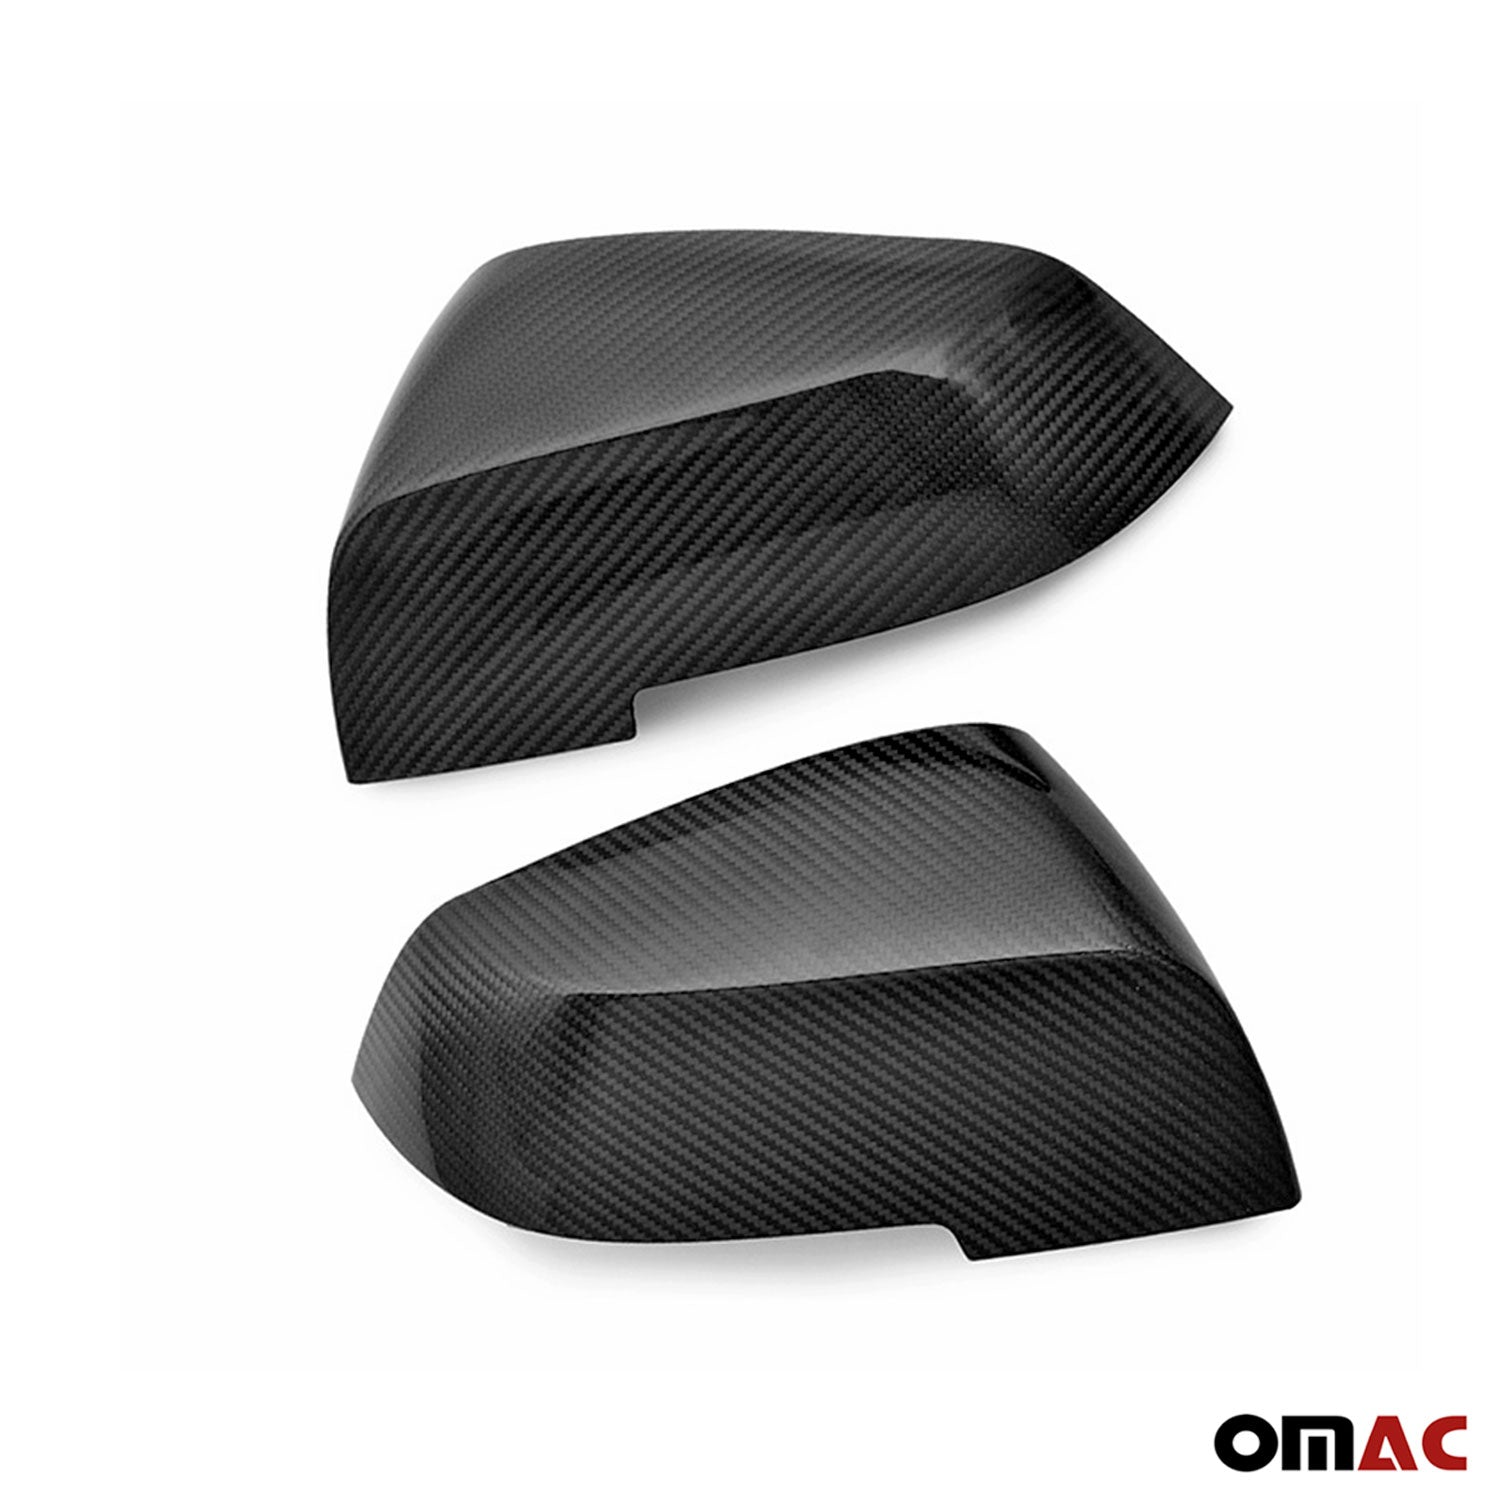 Fits BMW X1 E84 2013-2015 Genuine Carbon Fiber Side Mirror Cover Cap 2 Pcs